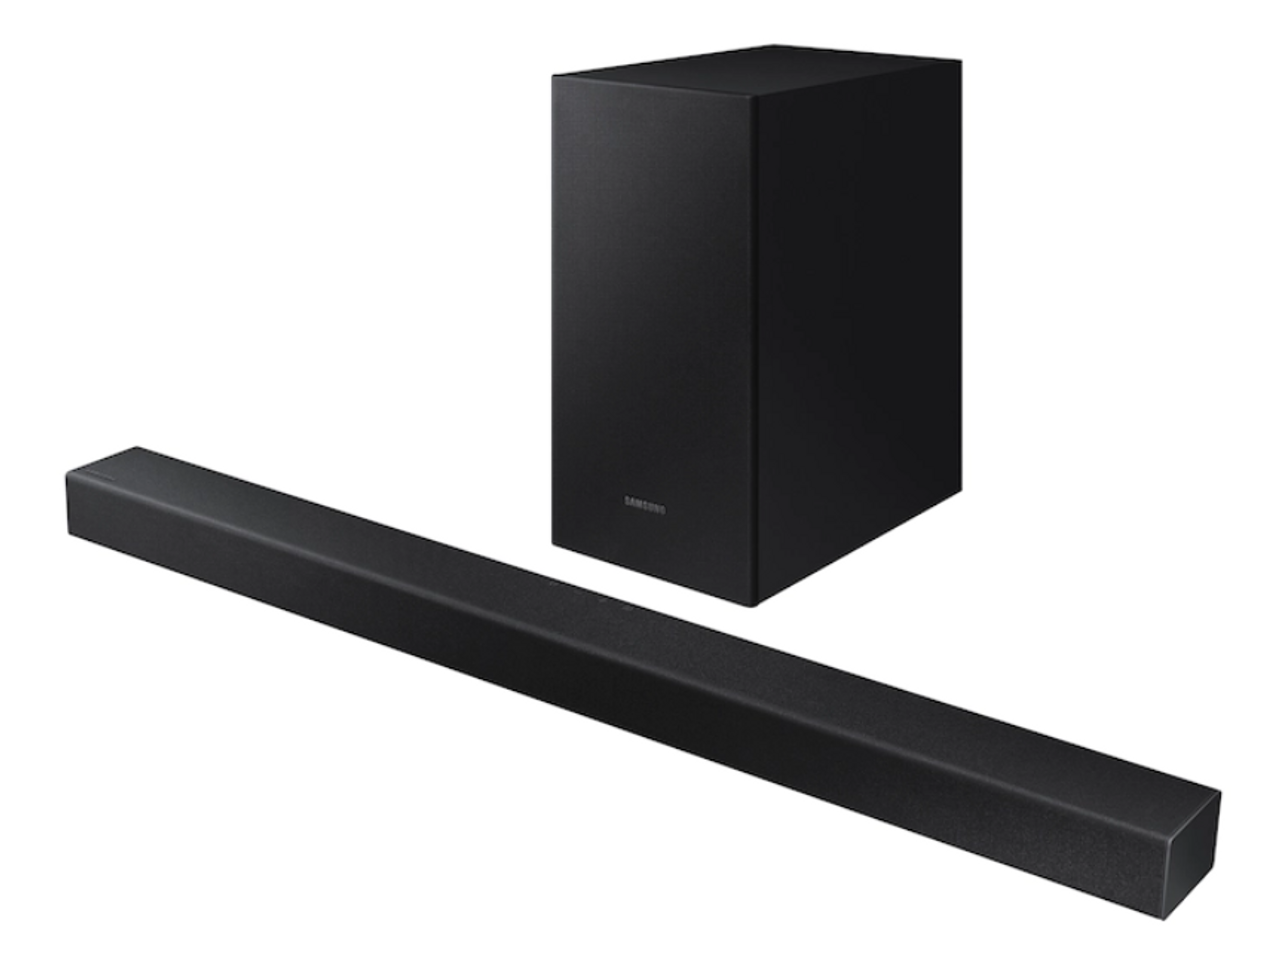 Samsung HW-T450/XY 2.1 Channel Soundbar w/ Dolby Audio 2020 Model